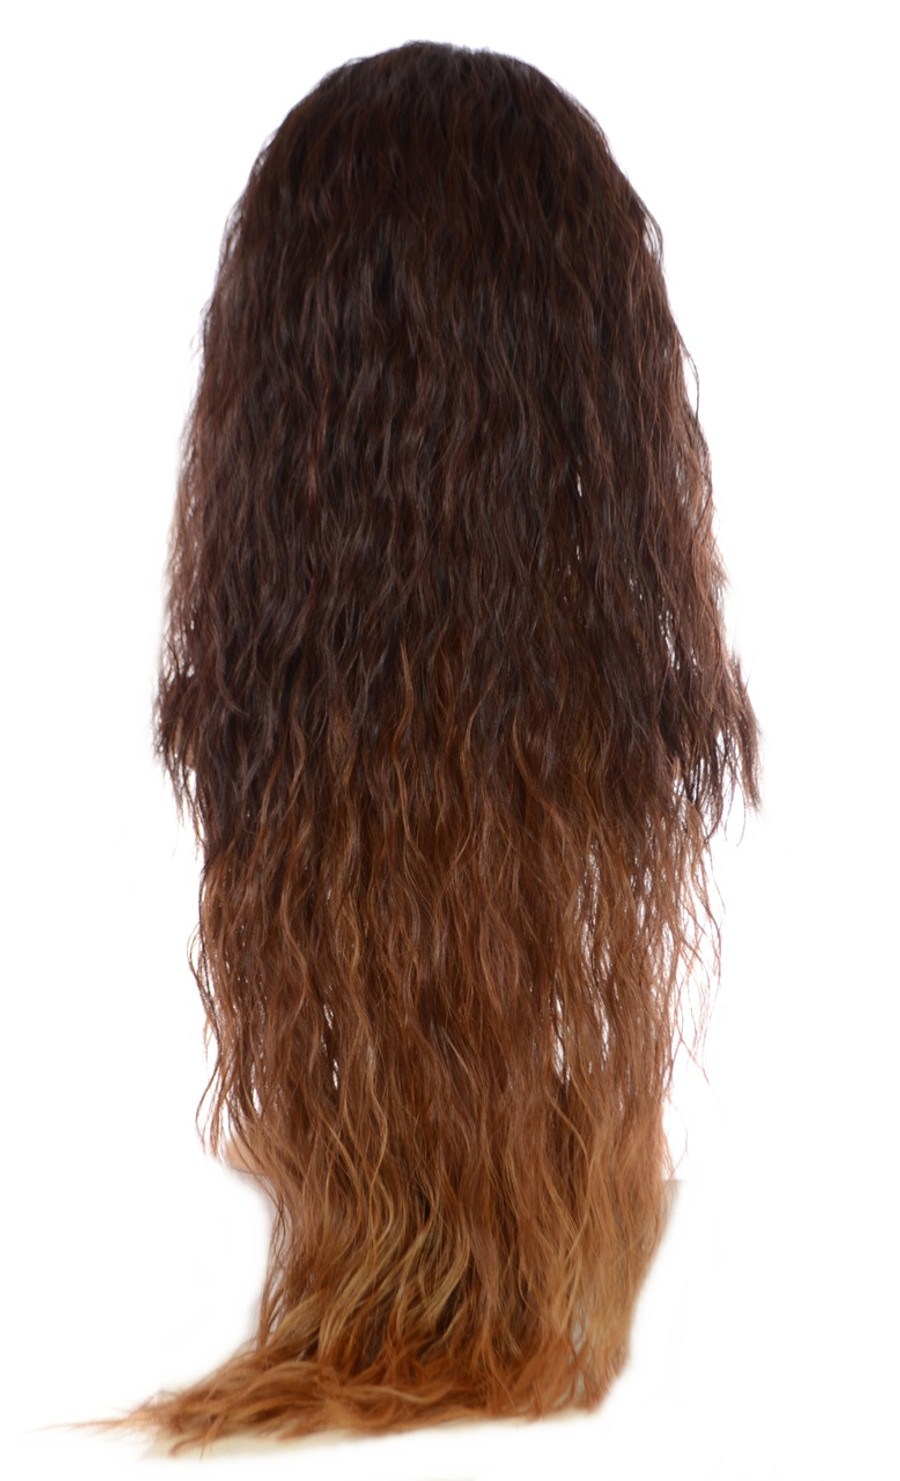 V Tress Crimp Hair Extensions Half Wig Dark Toffee Chocolate Brown